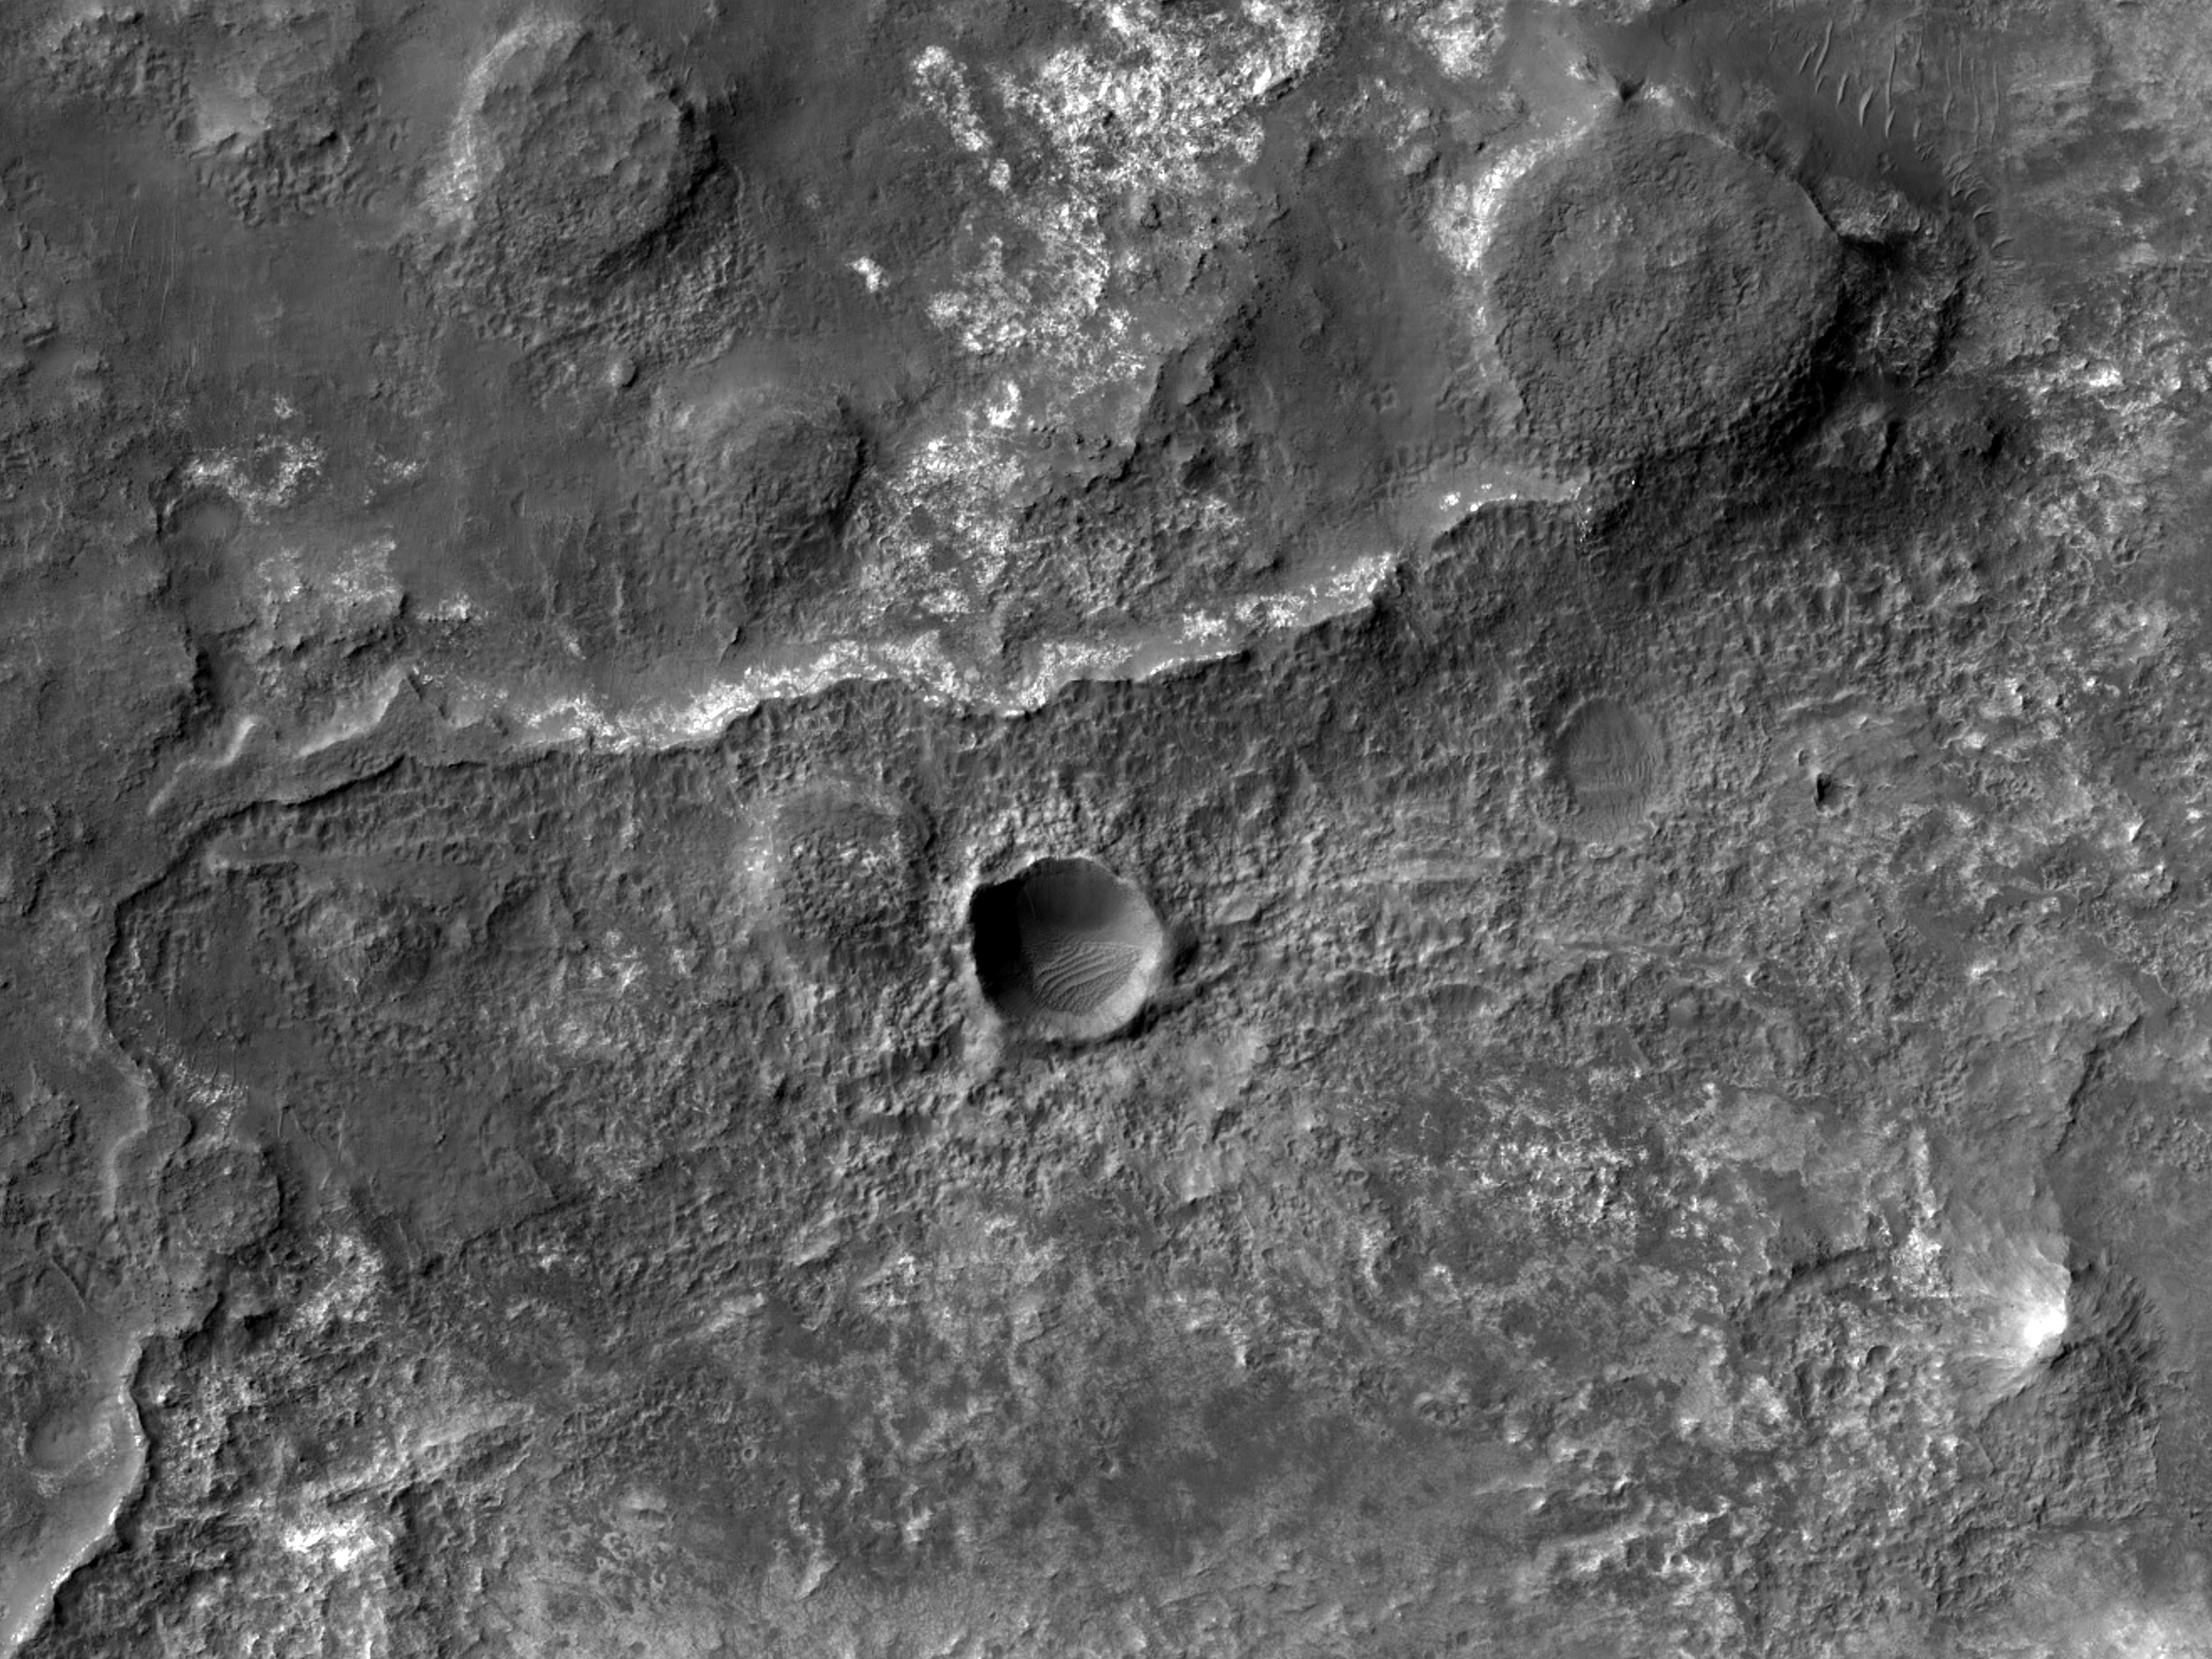 Inverted Channels in the Eridania Region